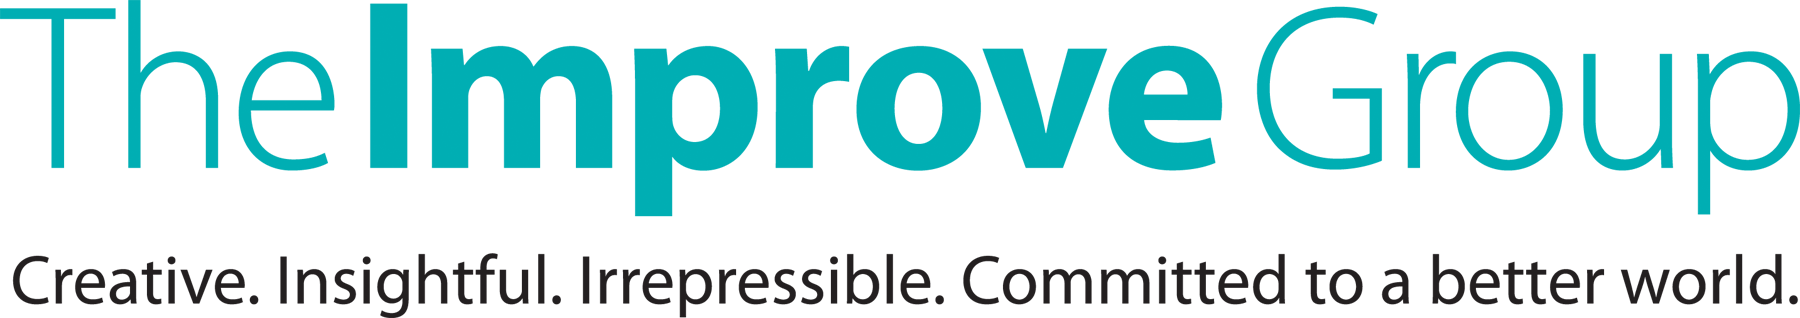 The Improve Group Logo with Tagline: Creative. Insightful. Irrepressible. Committed to a Better World.